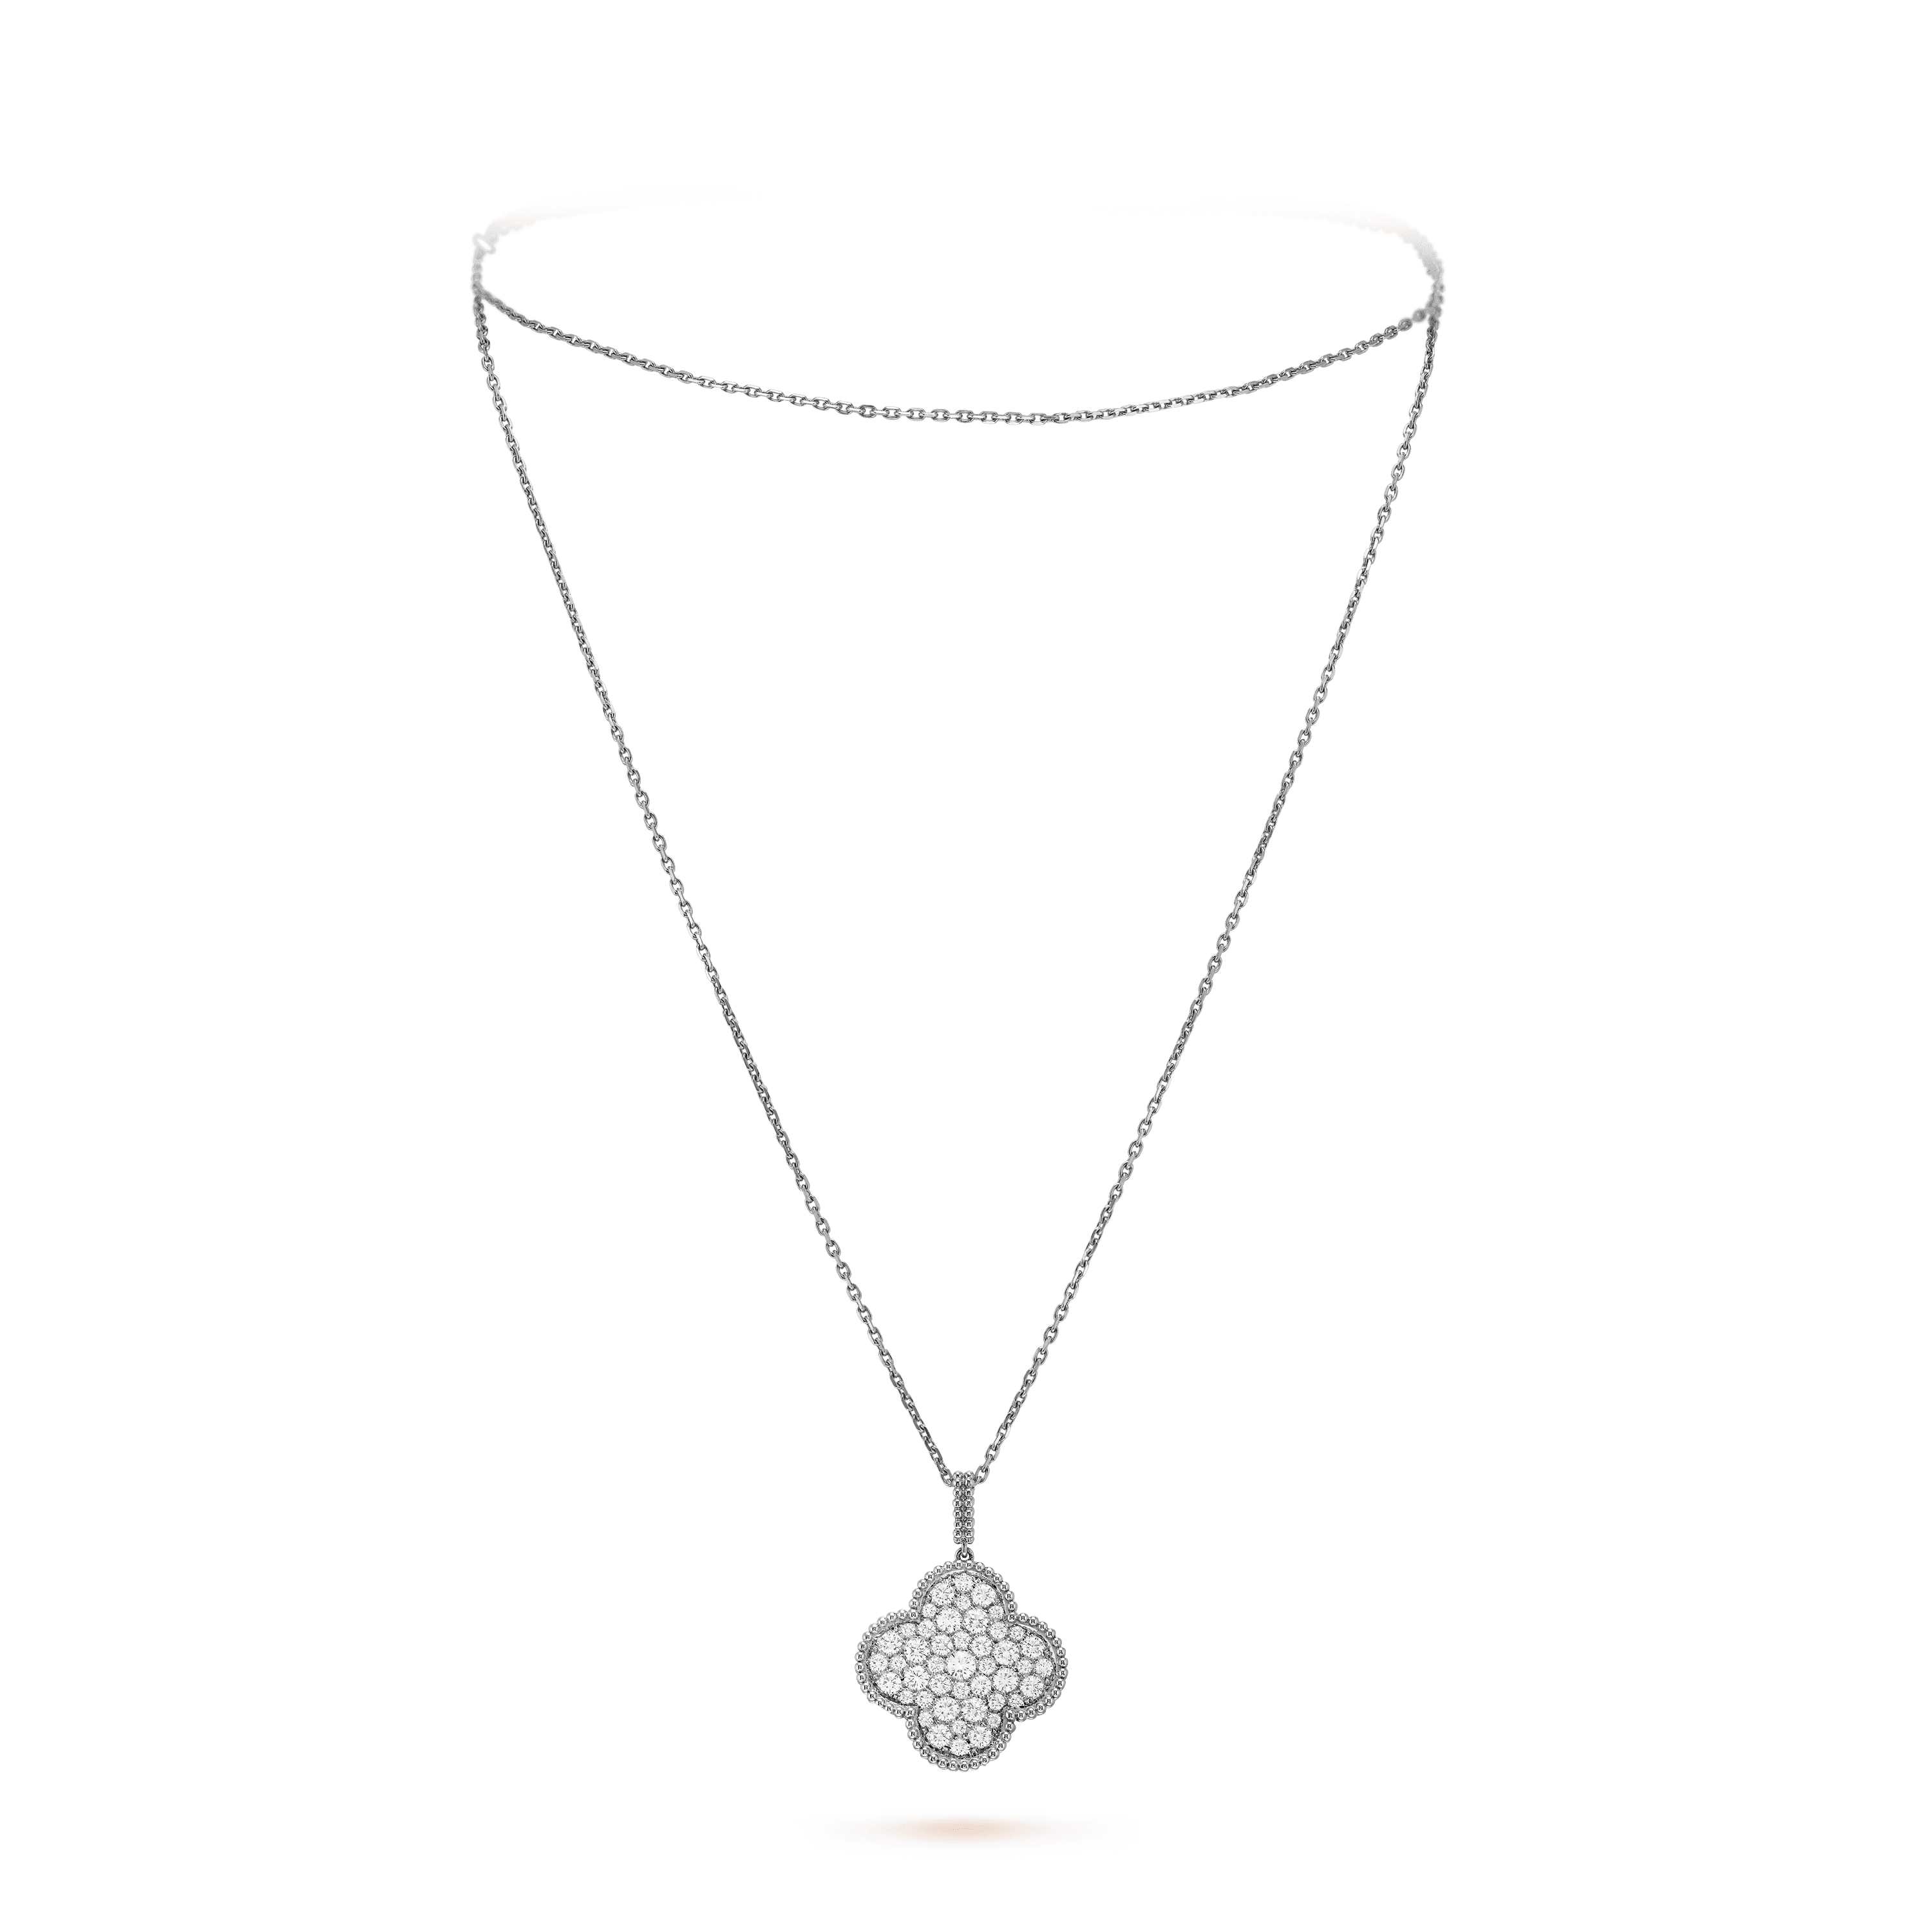 Magic Alhambra long necklace, 1 motif, - On Stand View - VCARO49O00 - Van Cleef & Arpels